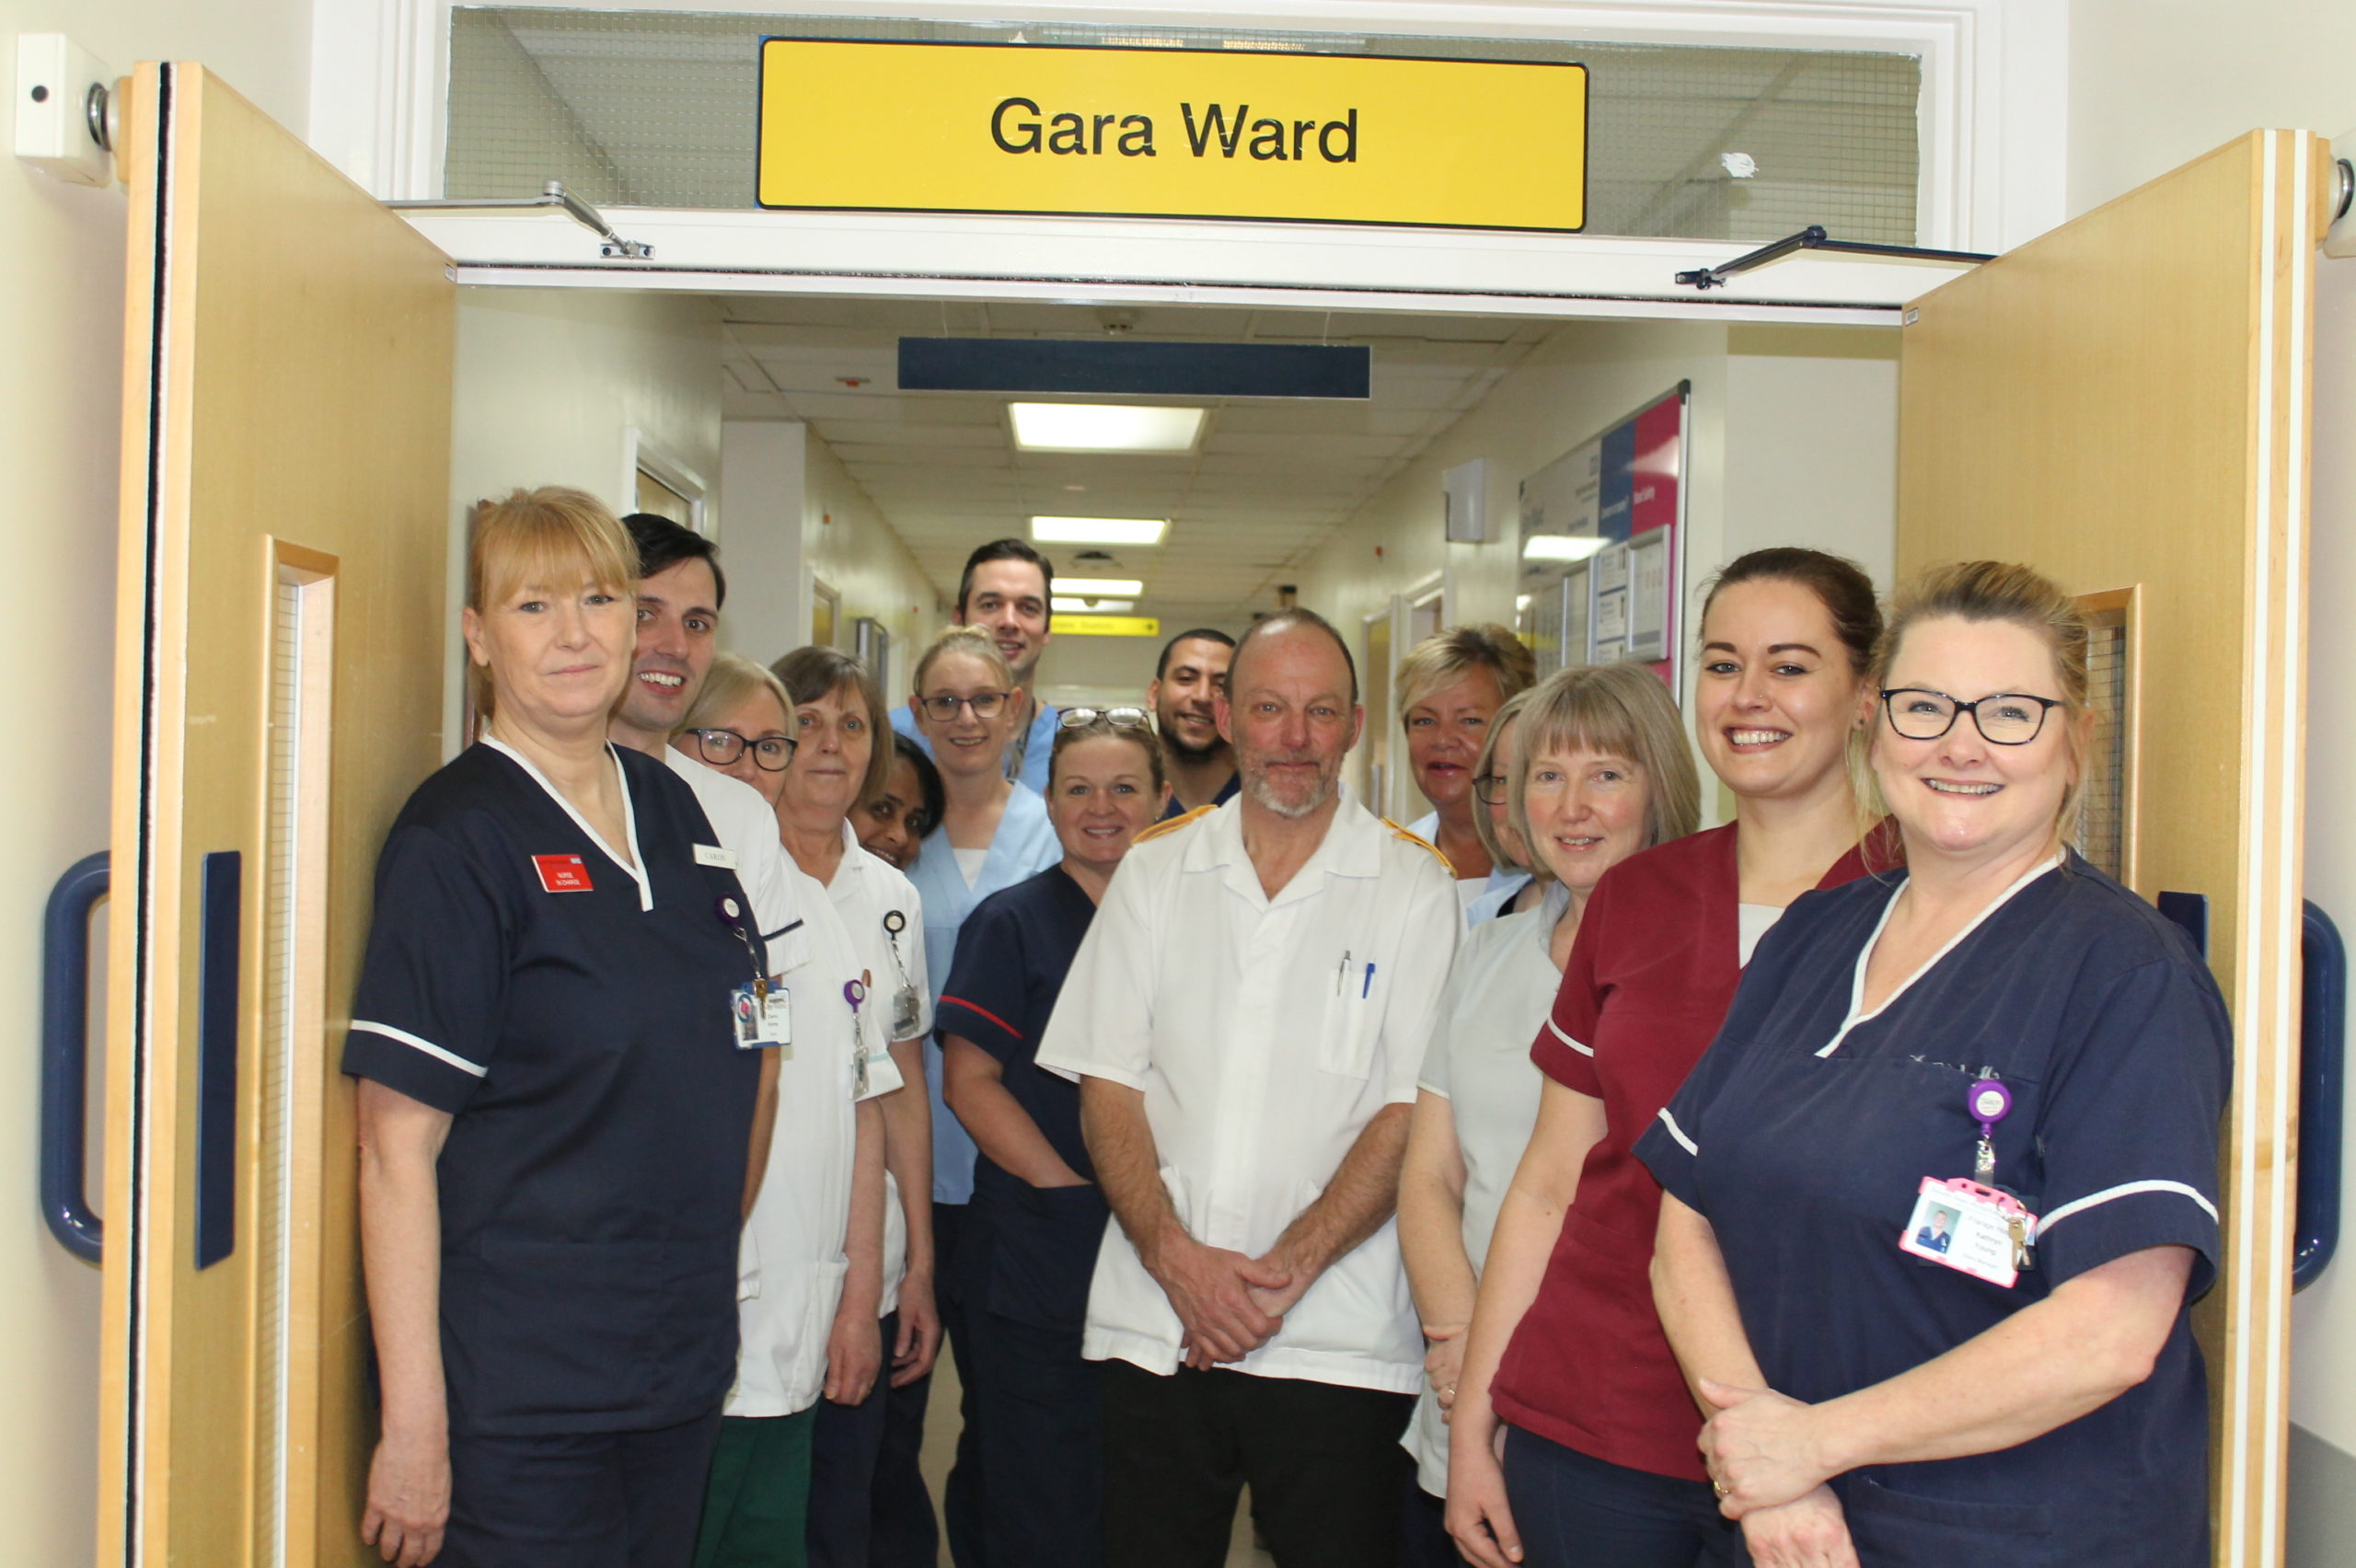 Gara elective orthopaedic ward staff at the Friarage Hospital